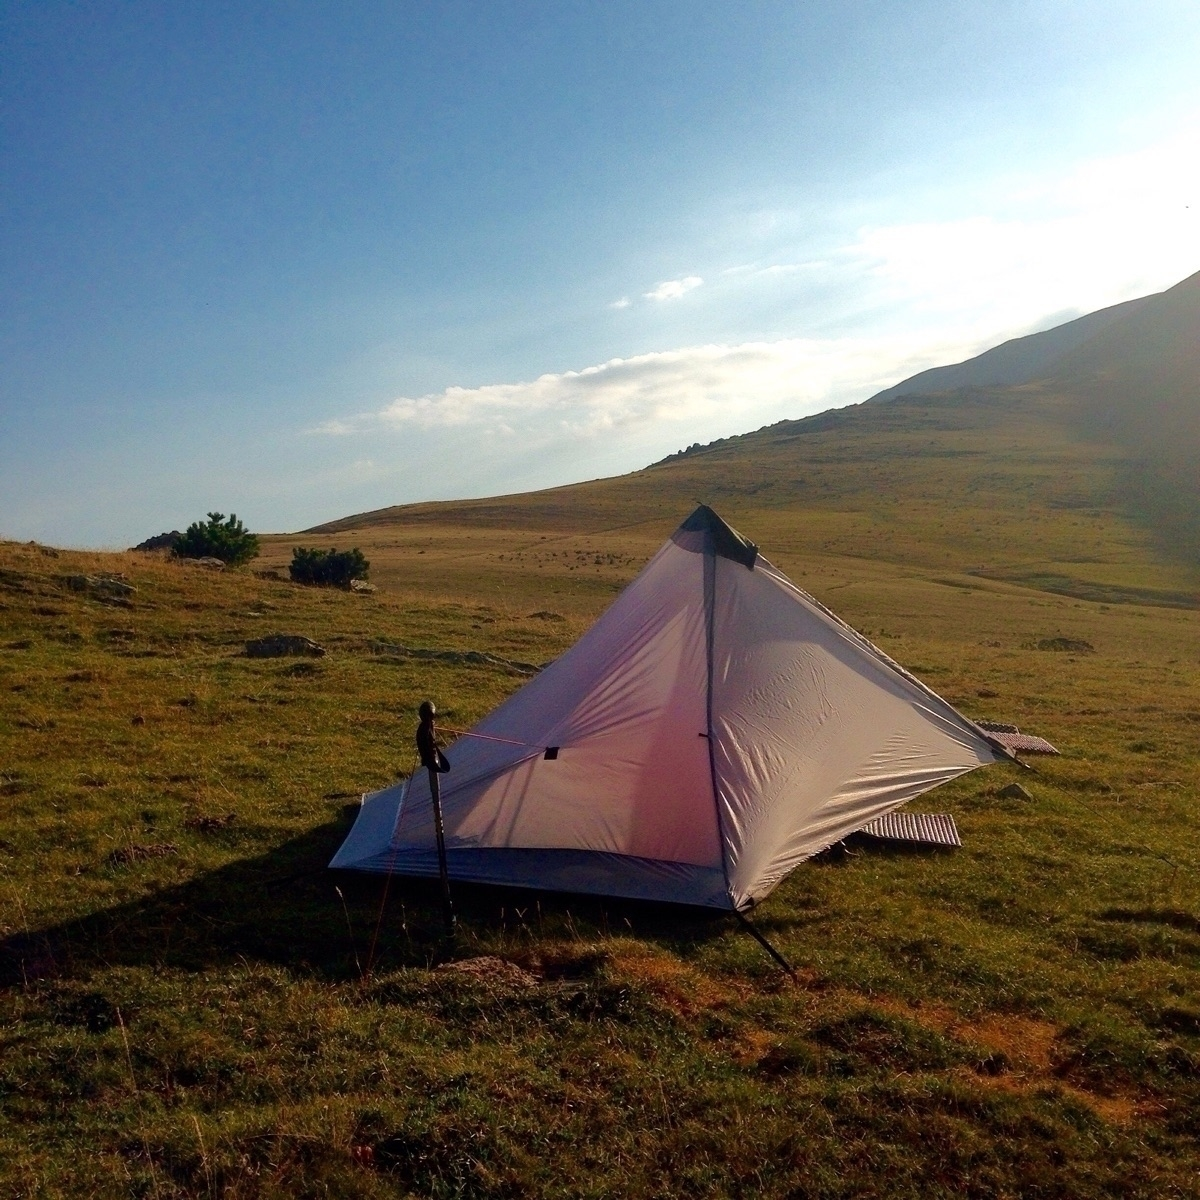 outdoors, hiking, tent, sixmoondesigns - overales | ello